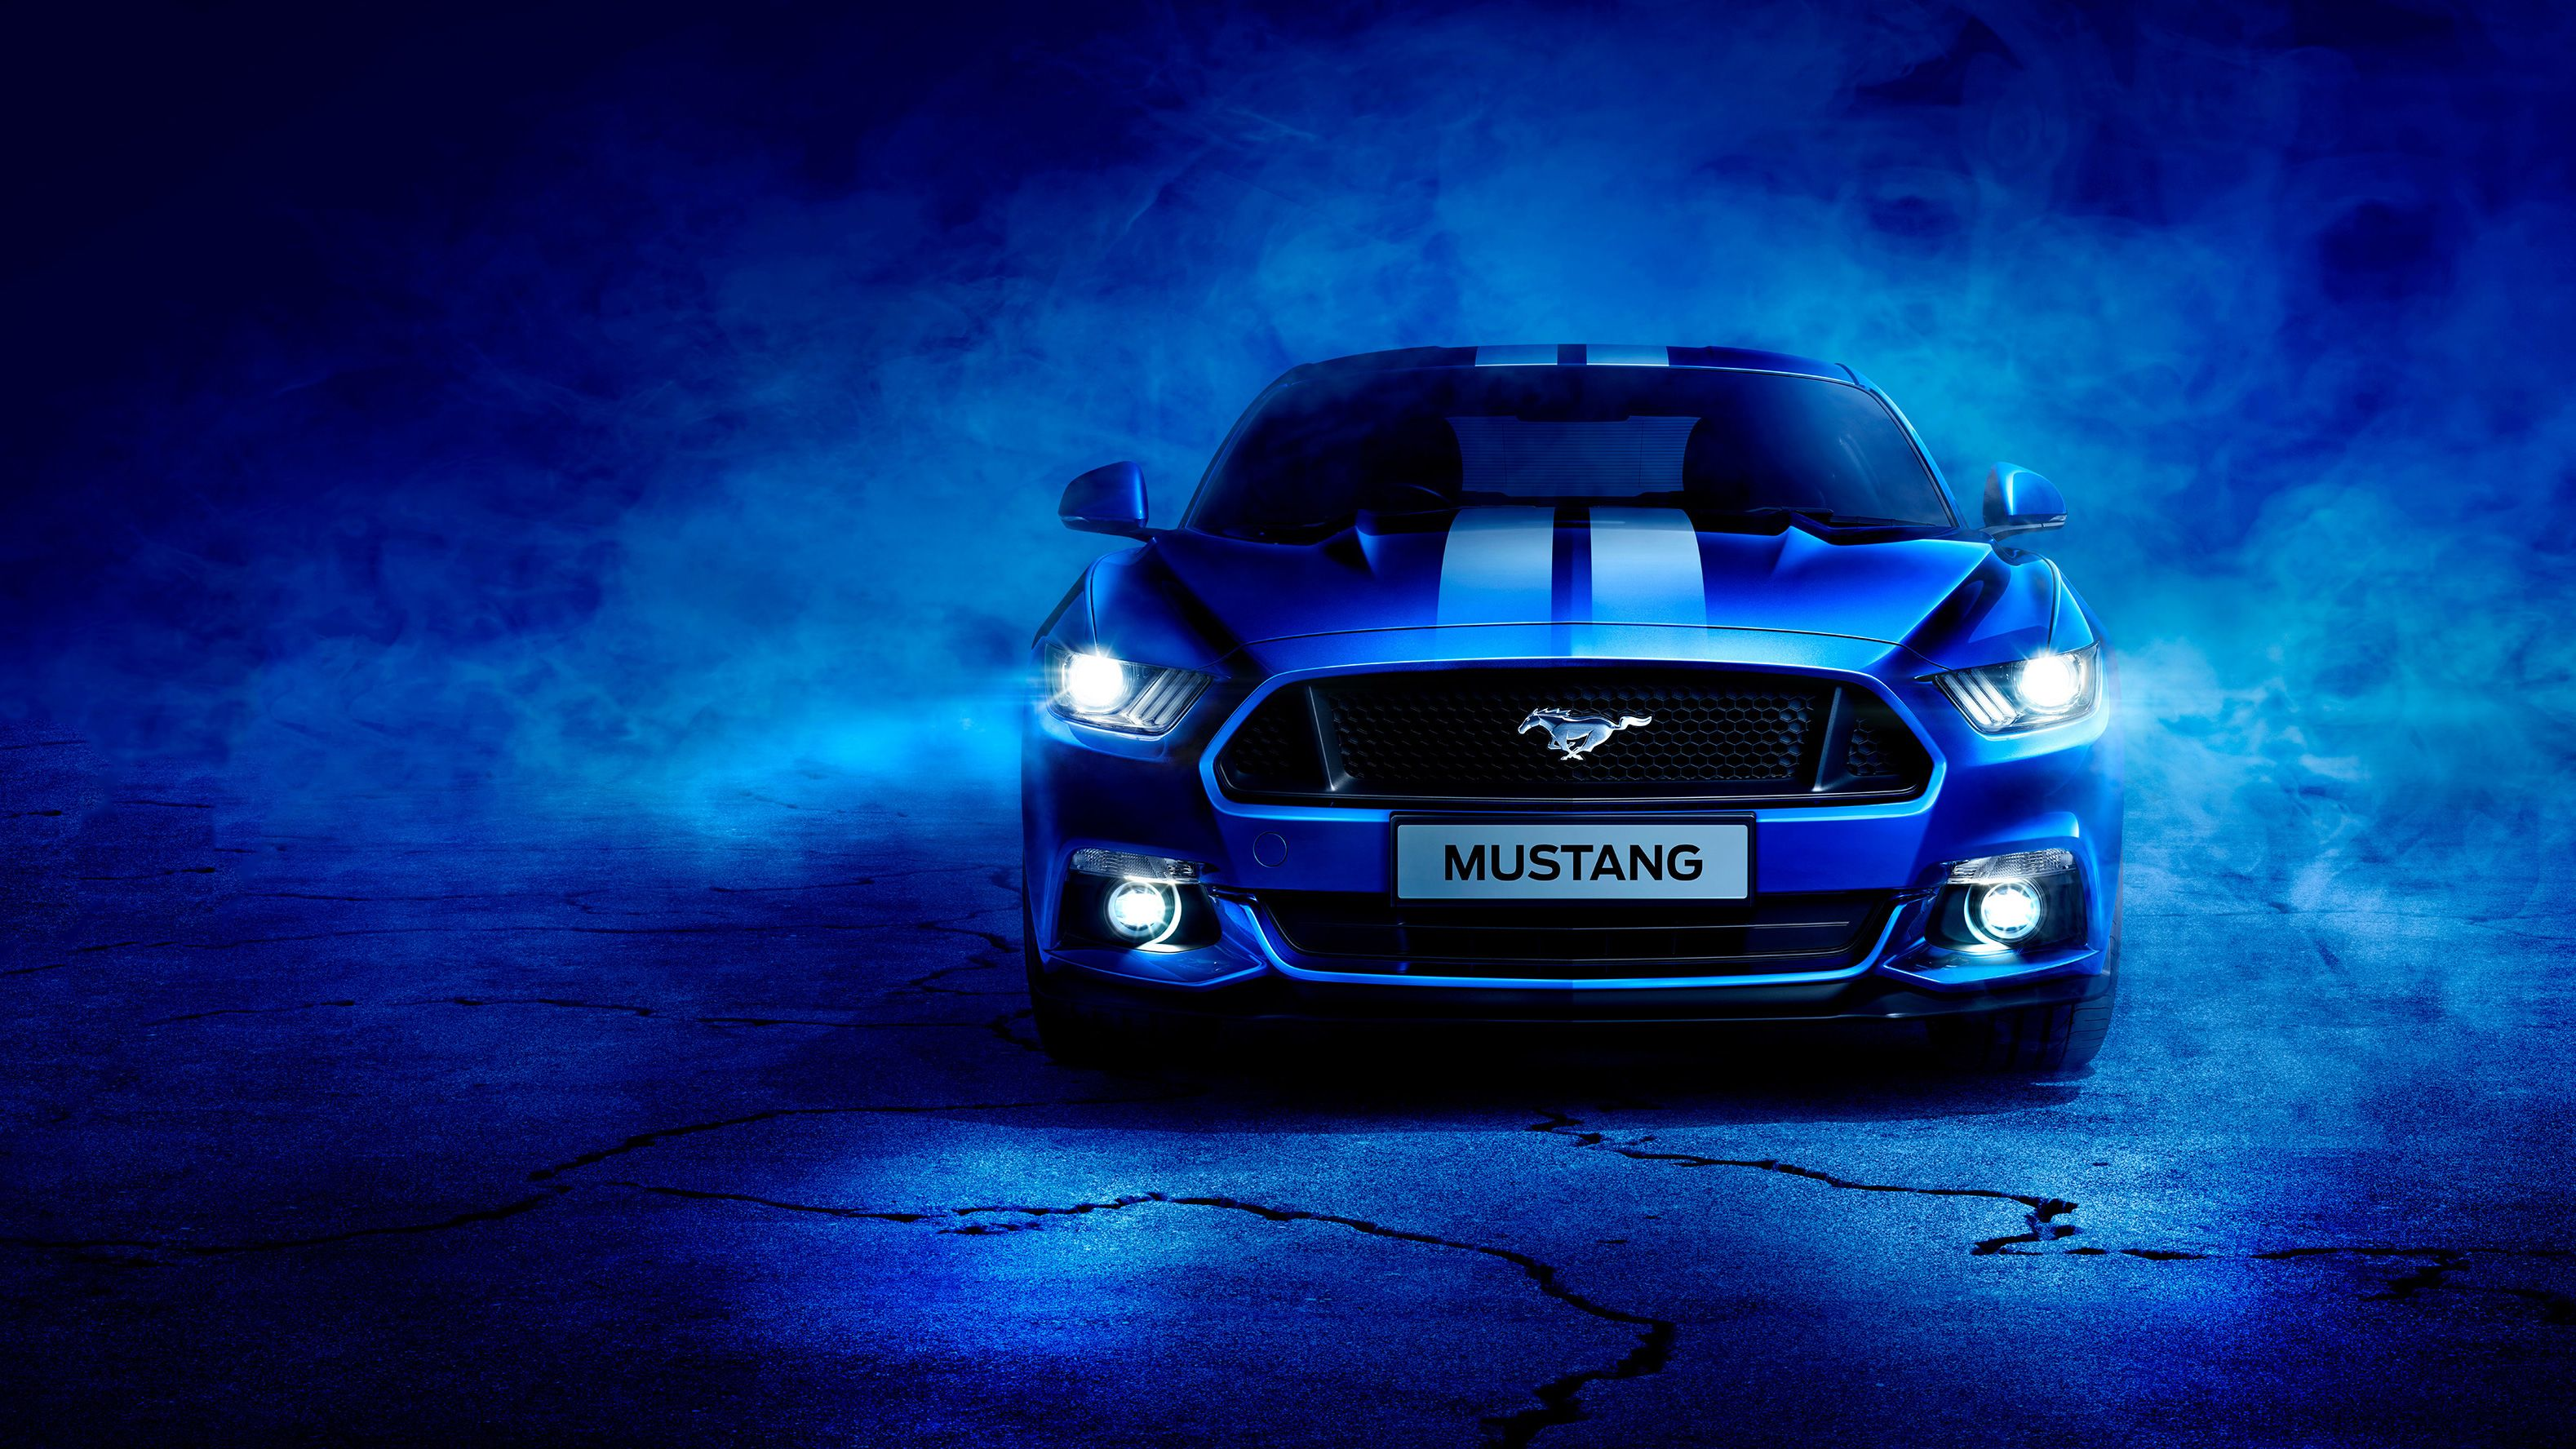 Blue Ford Mustang Wallpapers Top Free Blue Ford Mustang Backgrounds Wallpaperaccess